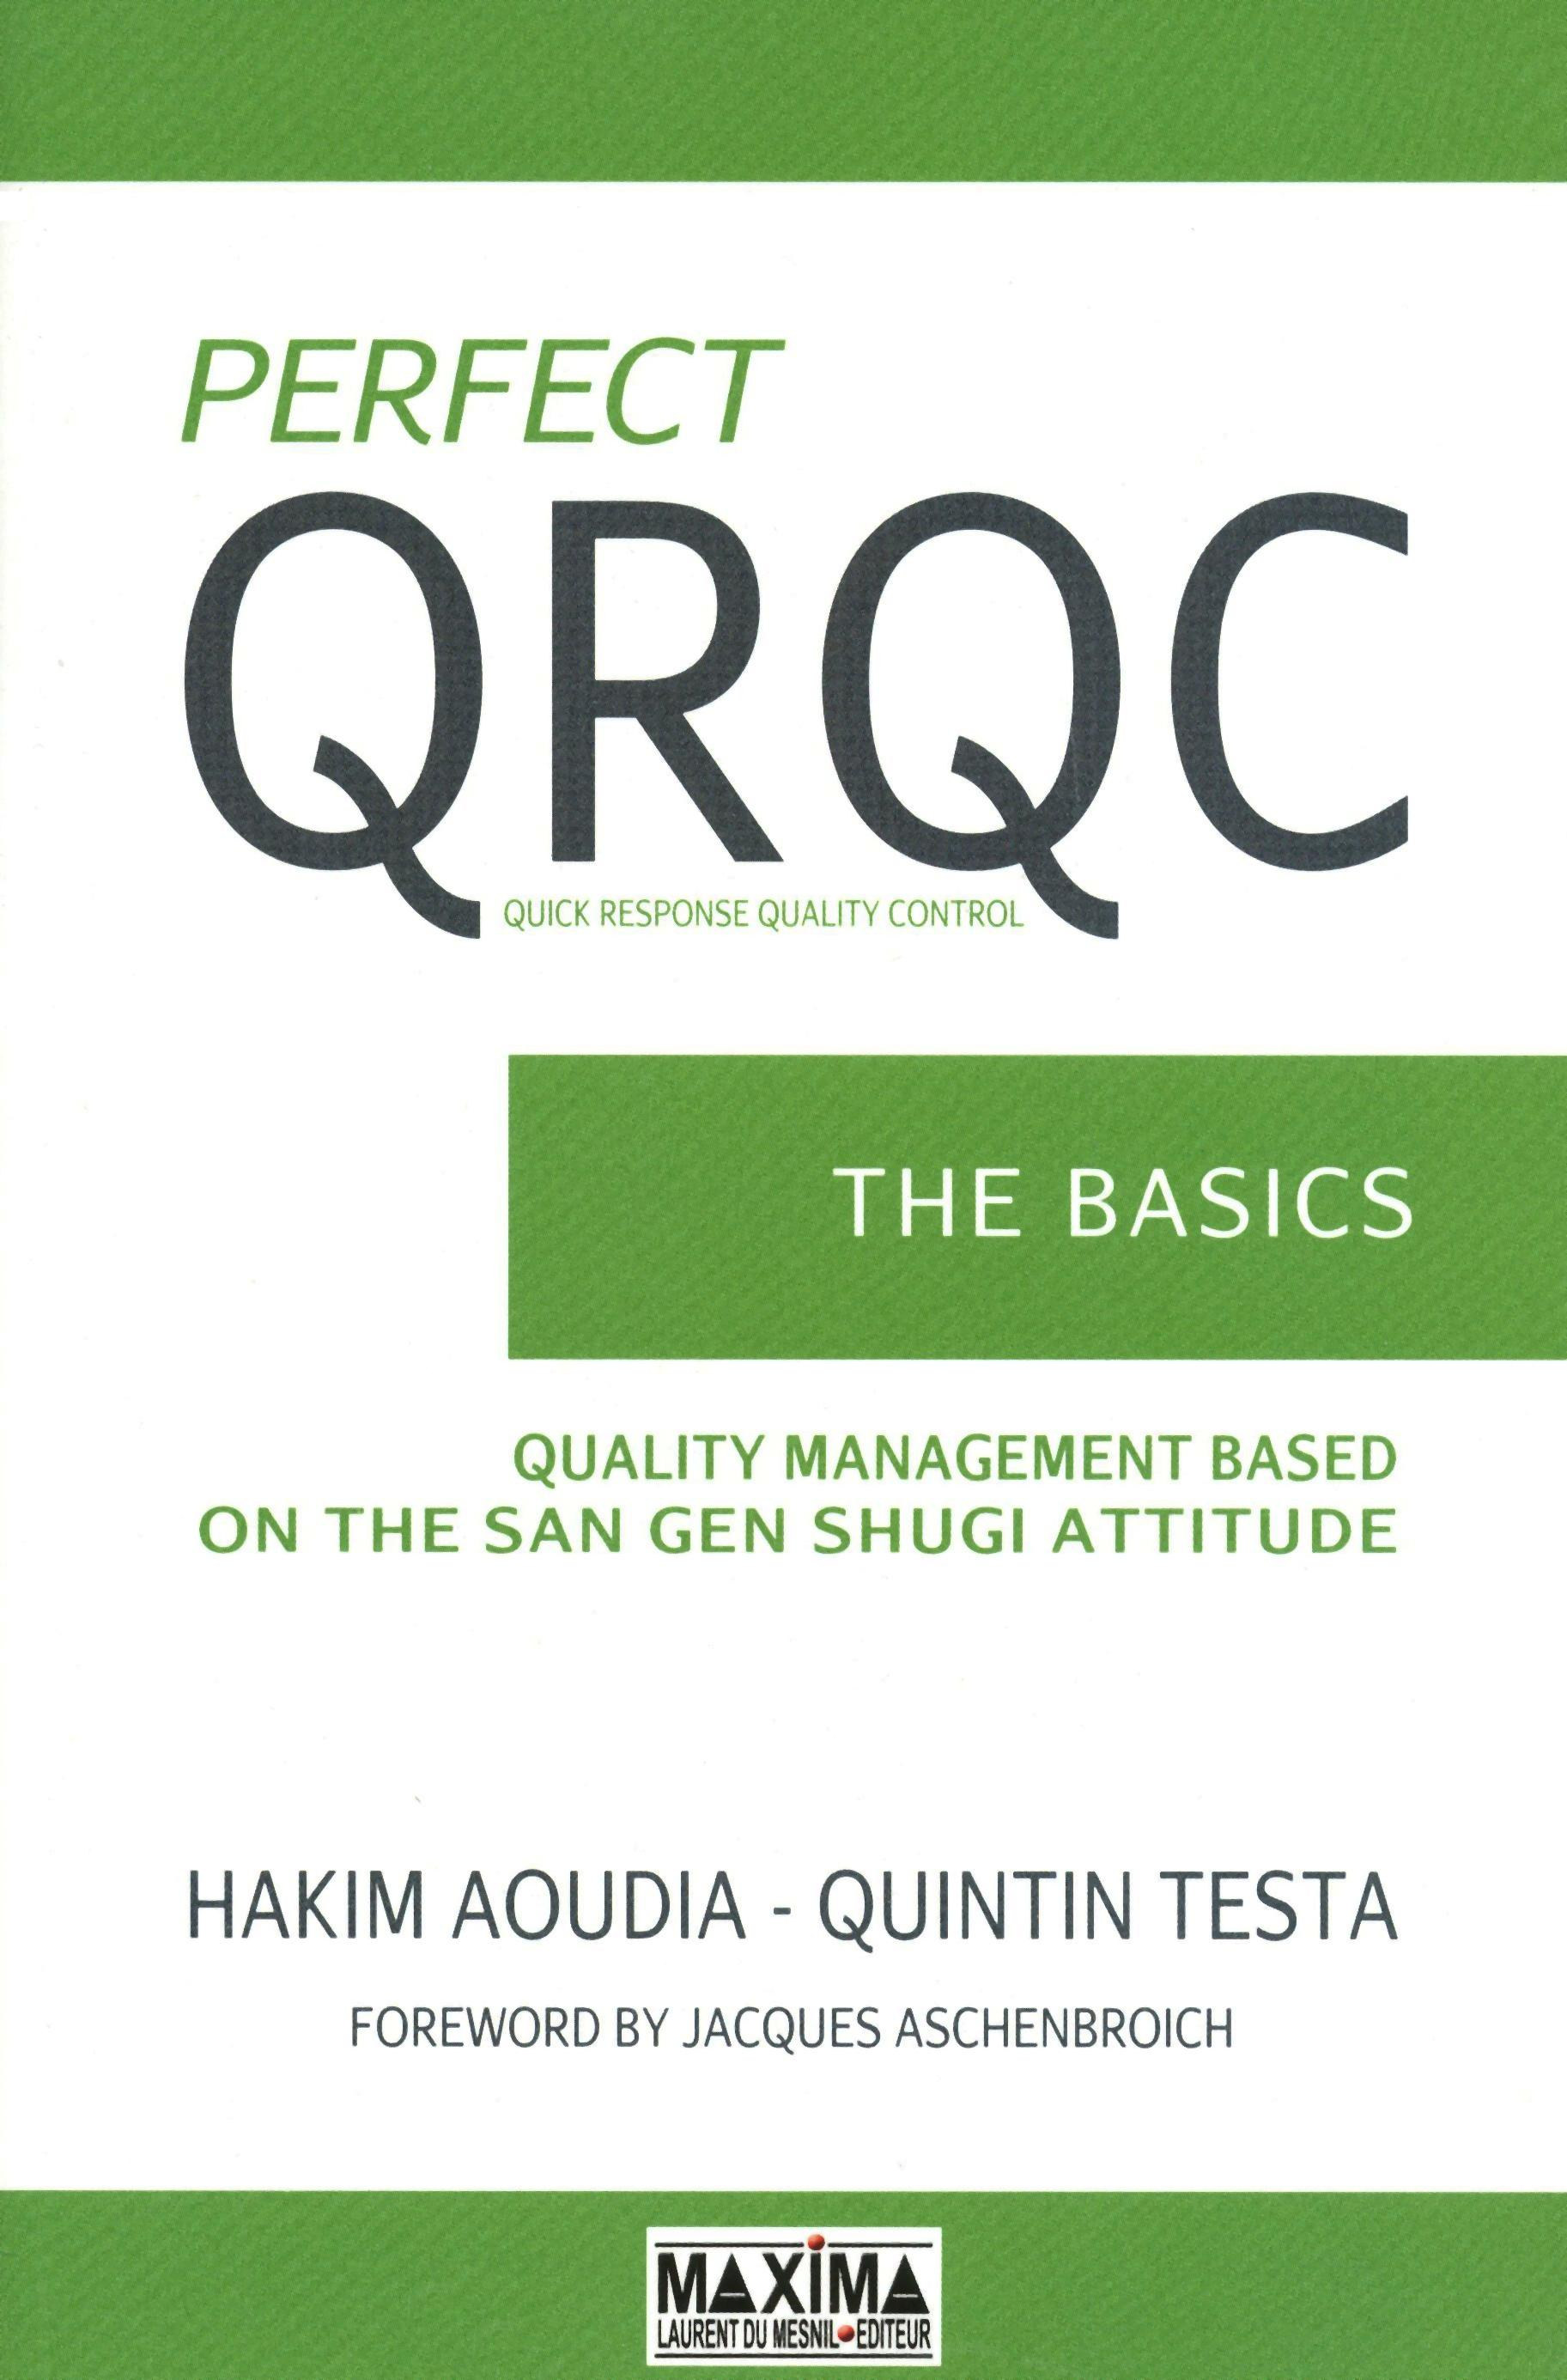 Perfect QRQC - The Basics, QUALITY MANAGEMENT BASED ON THE SAN GEN SHUGI ATTITUDE